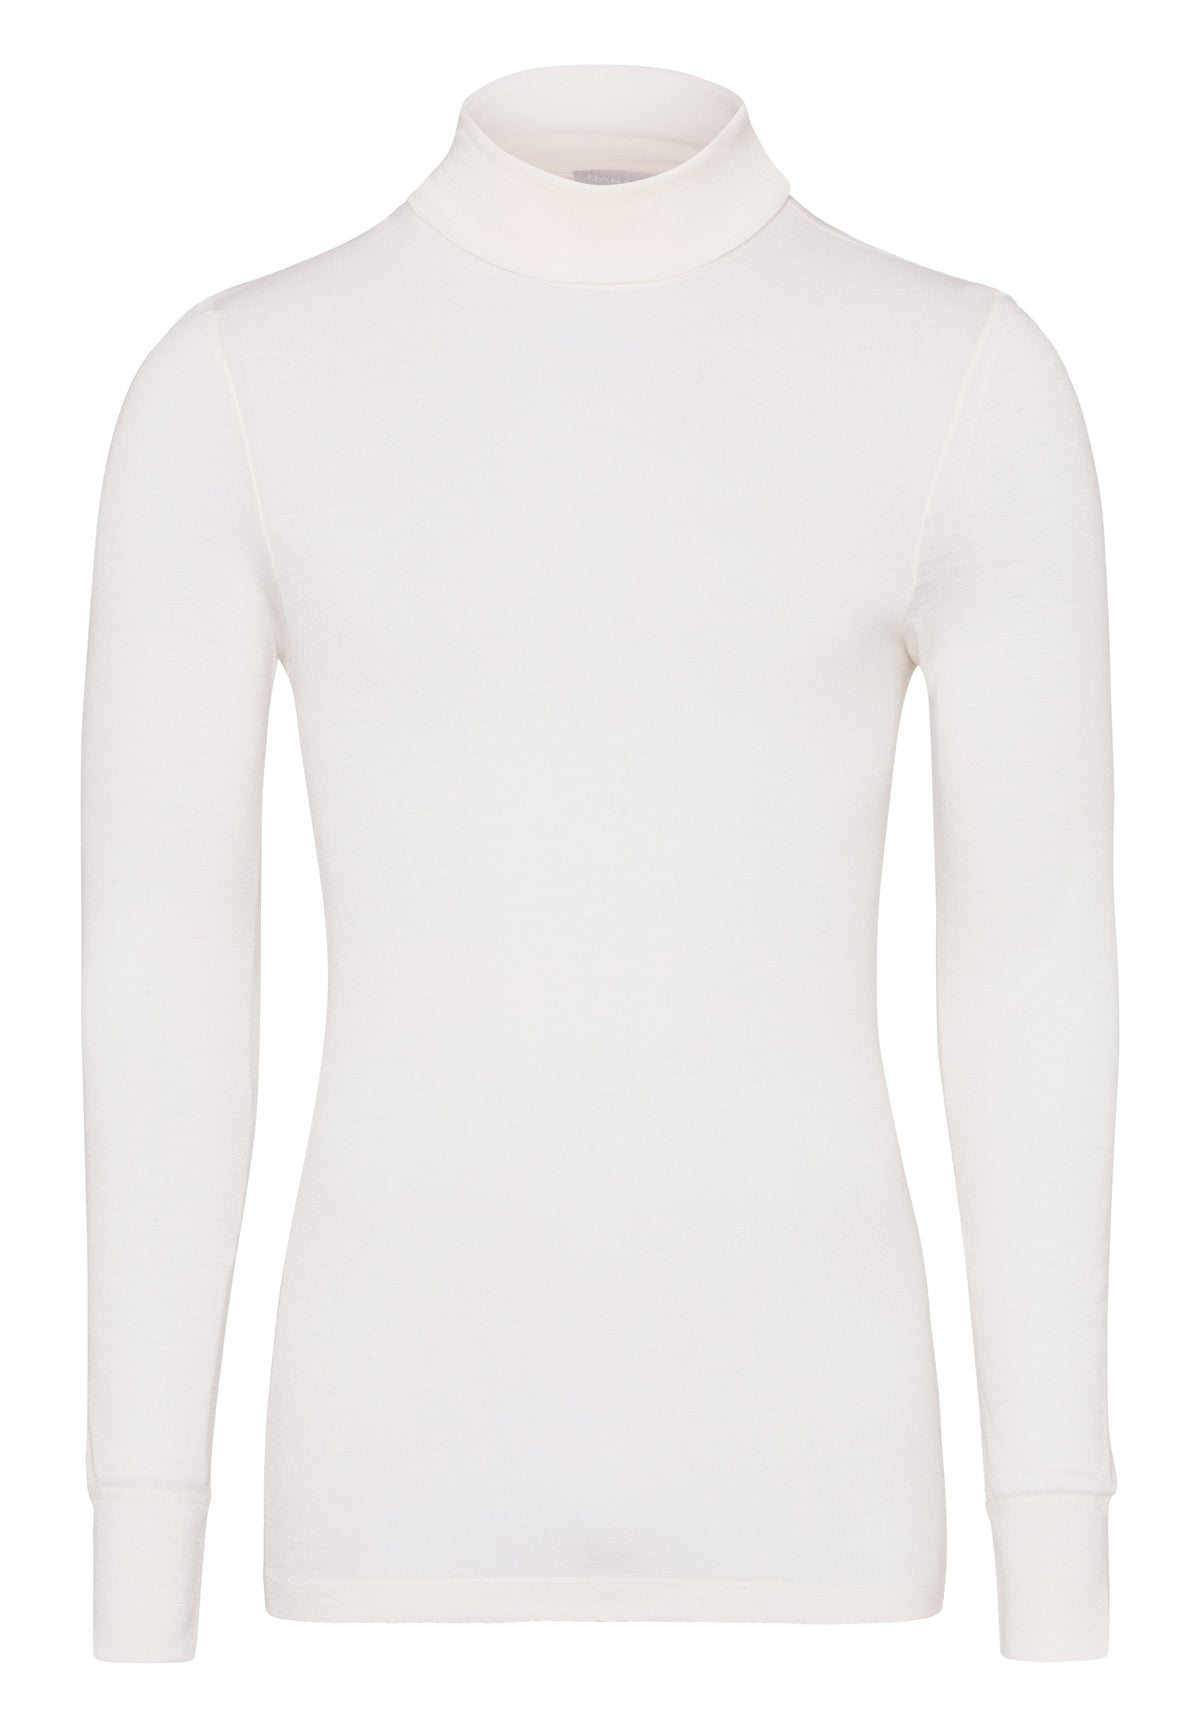 Woolen Silk - Long-sleeved Turtle Neck Top - HANRO